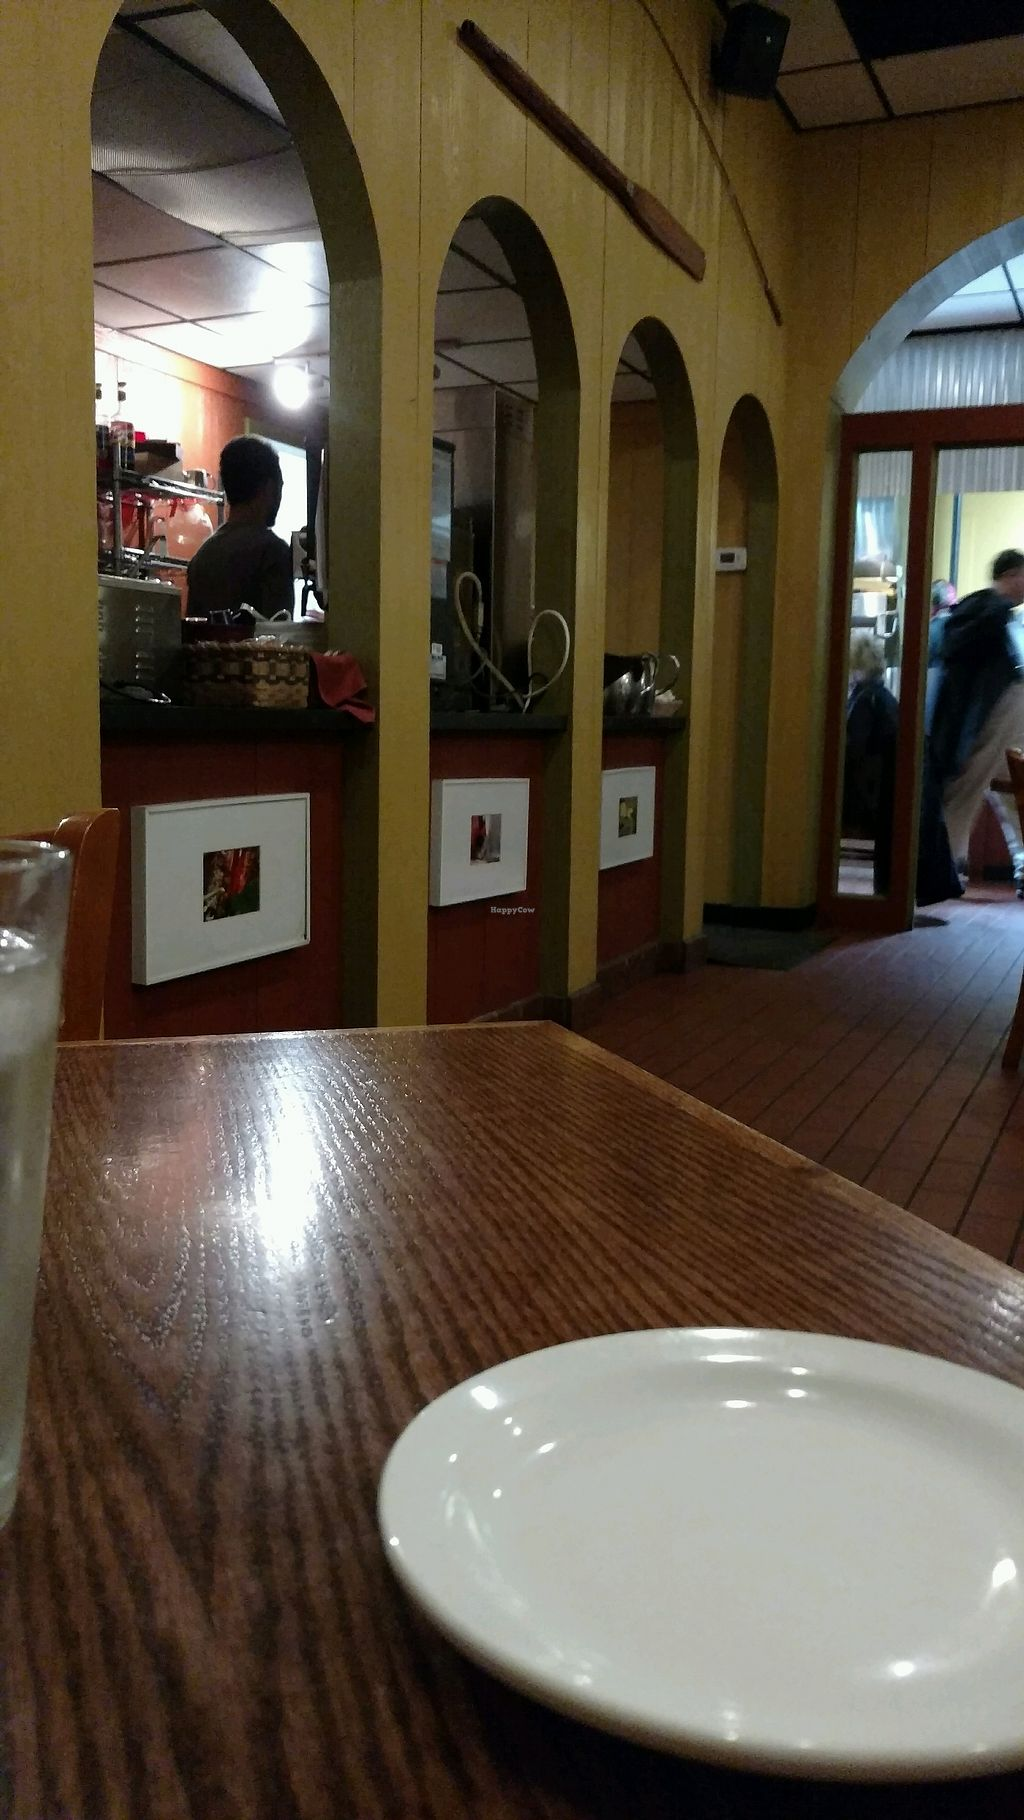 """Photo of Soup Spoon Cafe  by <a href=""""/members/profile/Queensnake88"""">Queensnake88</a> <br/>Too many things in customer's view that should not be: the back sides of machines and soup warming tubs.  <br/> January 11, 2018  - <a href='/contact/abuse/image/54139/345351'>Report</a>"""